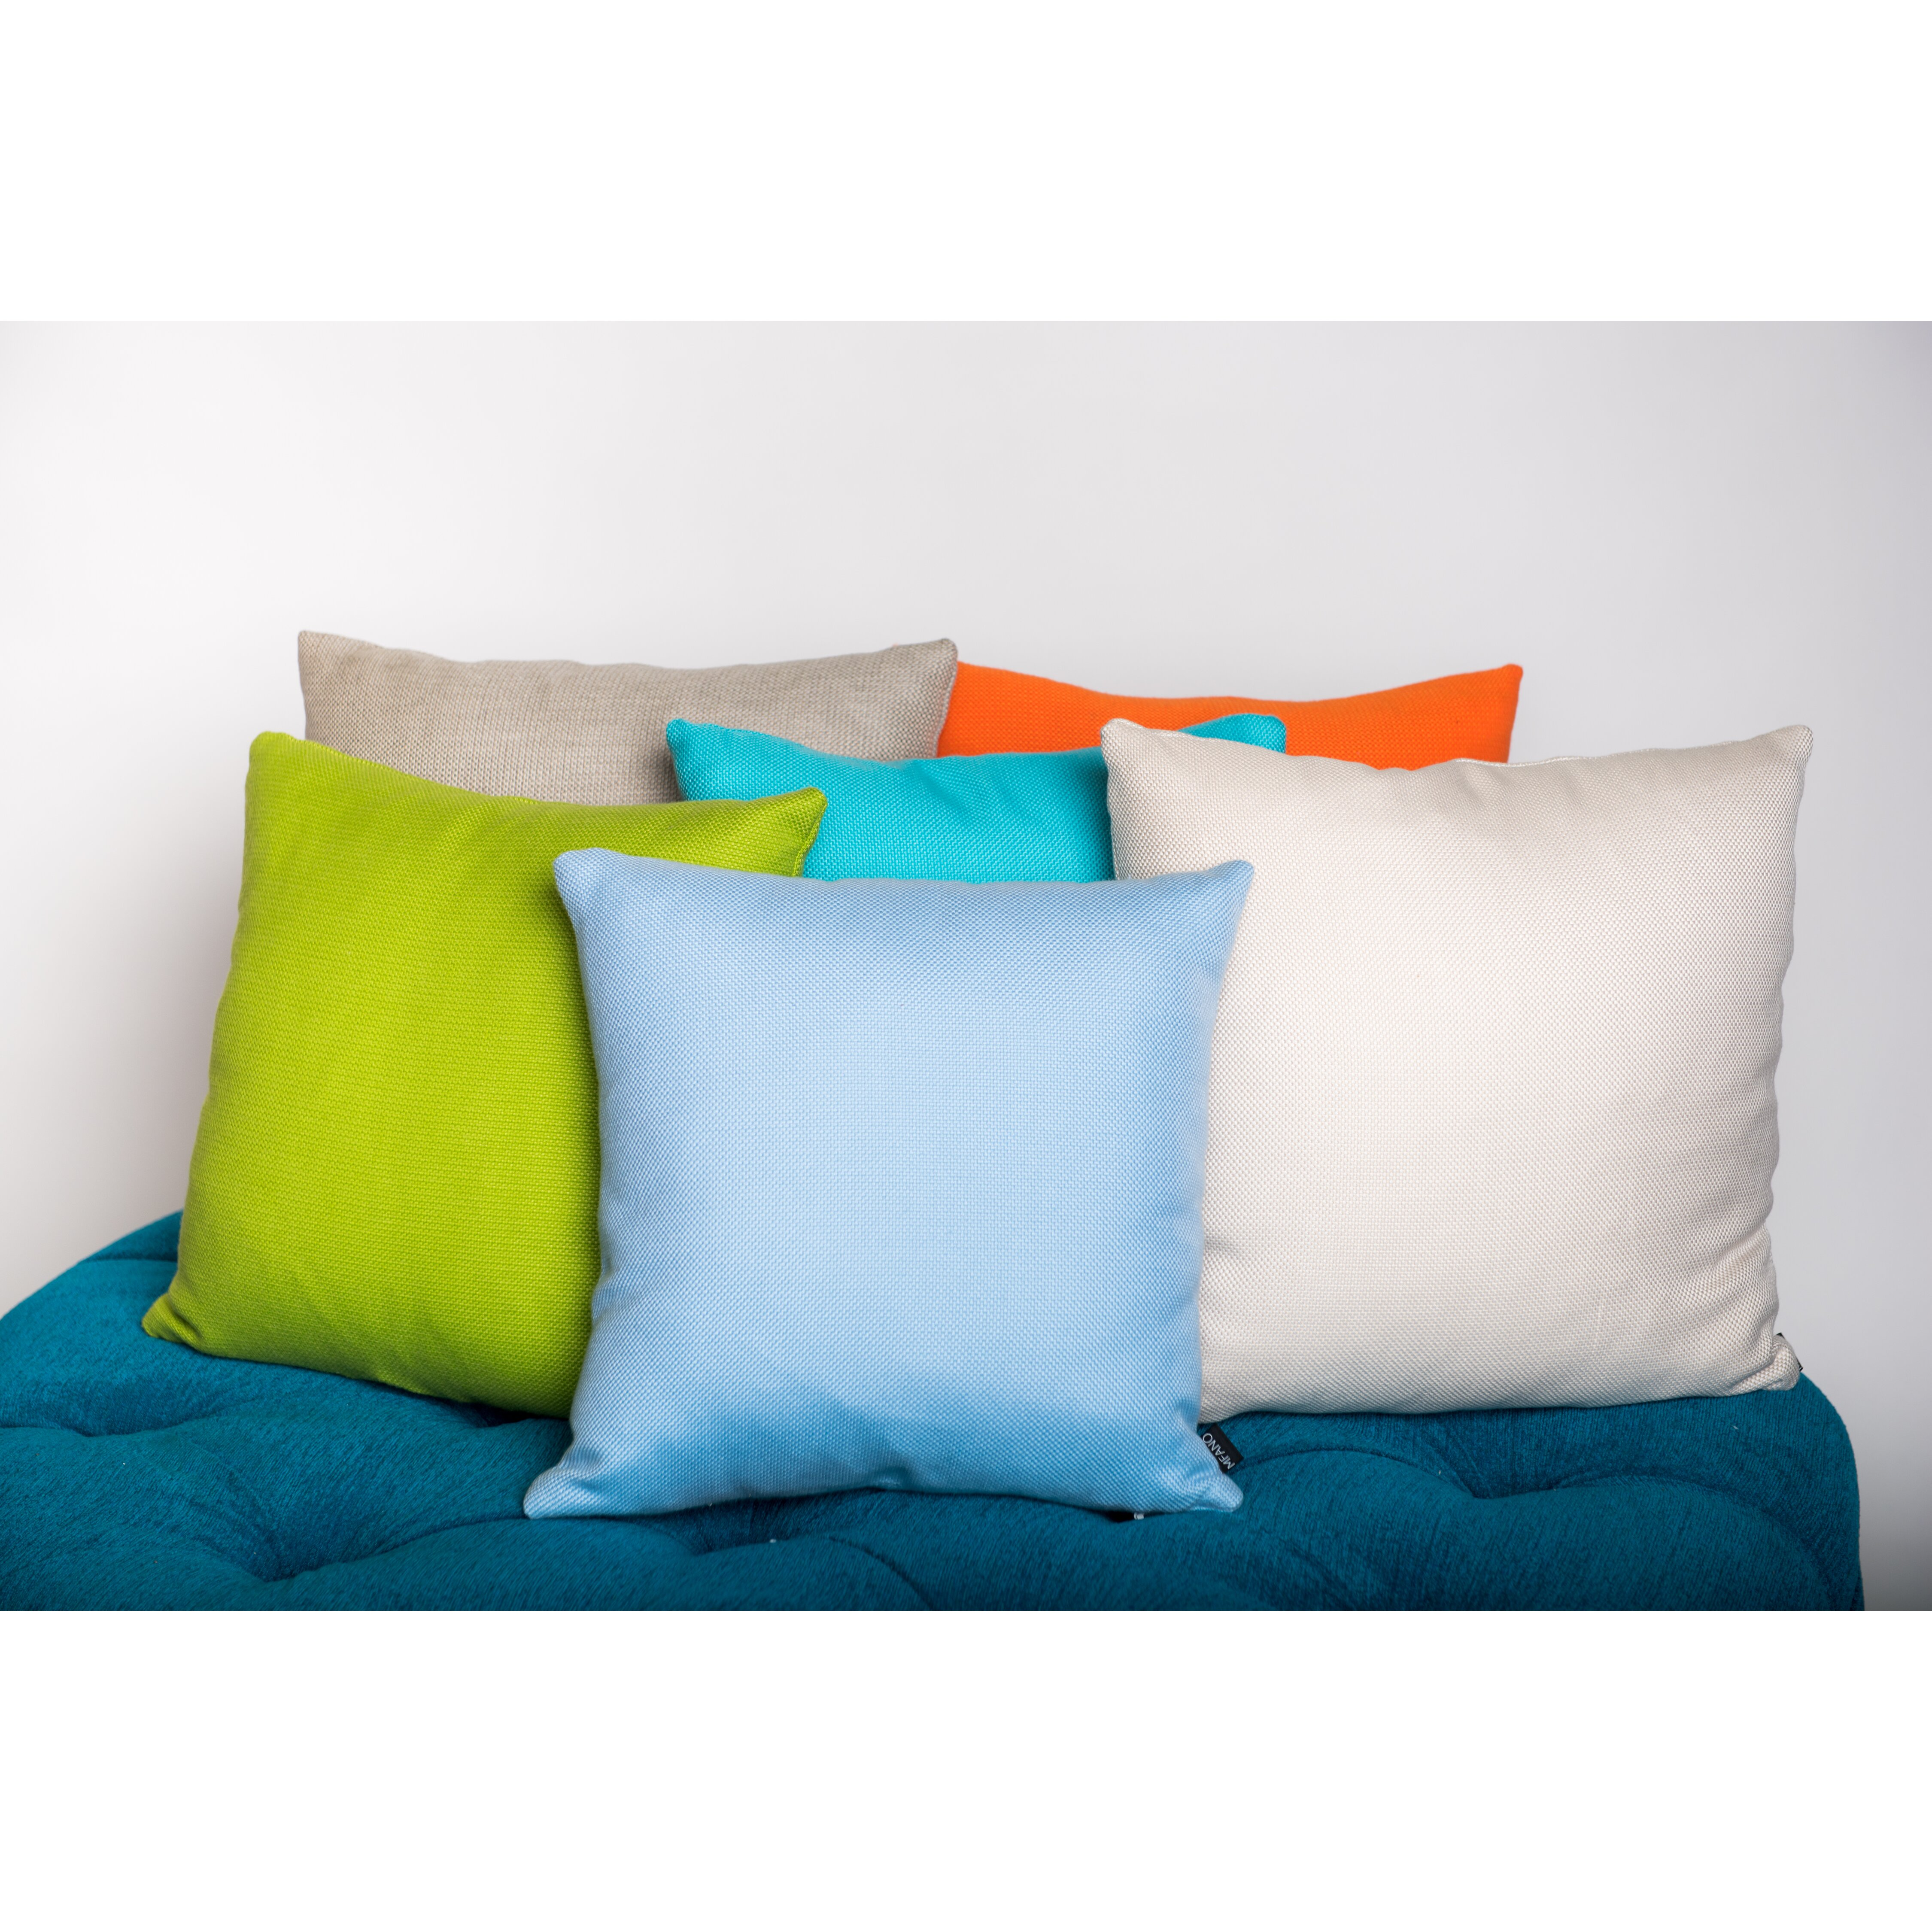 Throw Pillows In Abuja : MFANO Decor Alyssa Luvs Indoor/Outdoor Throw Pillow Wayfair